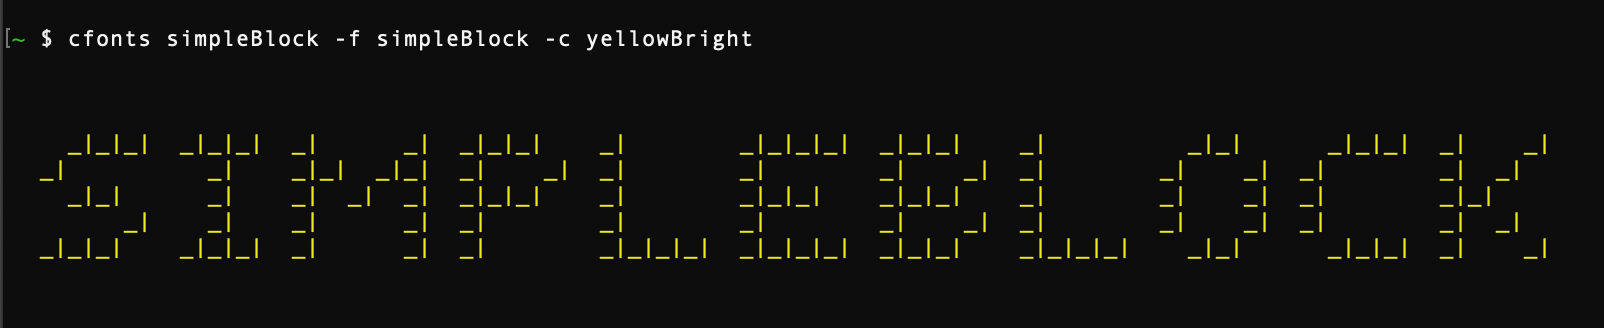 simple-block font style